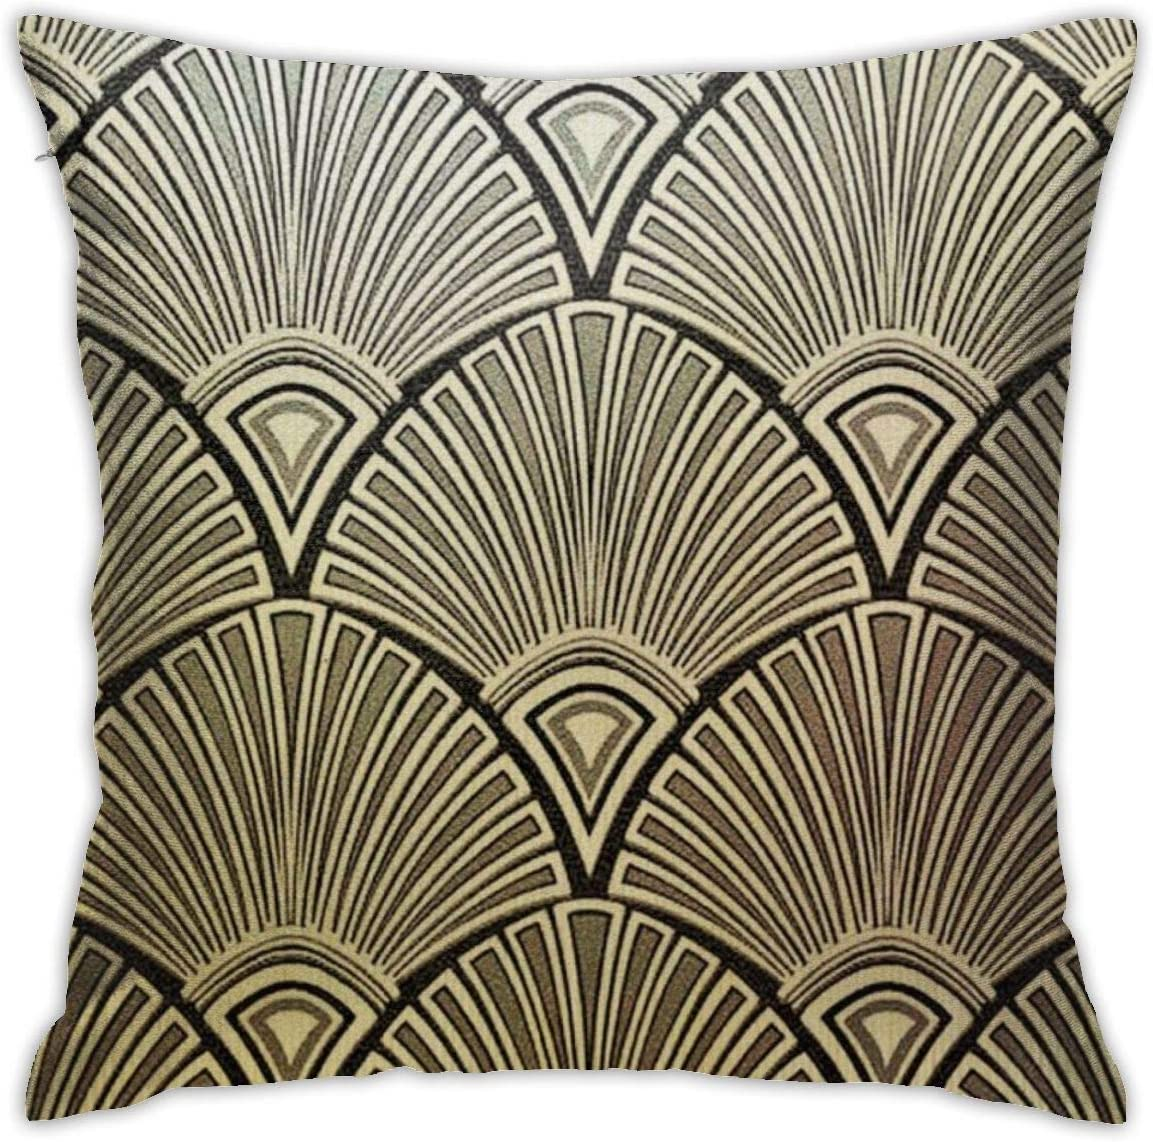 Art Deco Pattern Images Daily Decorations Sofa Throw Pillow Case Cushion Covers Zippered Pillowcase 4545